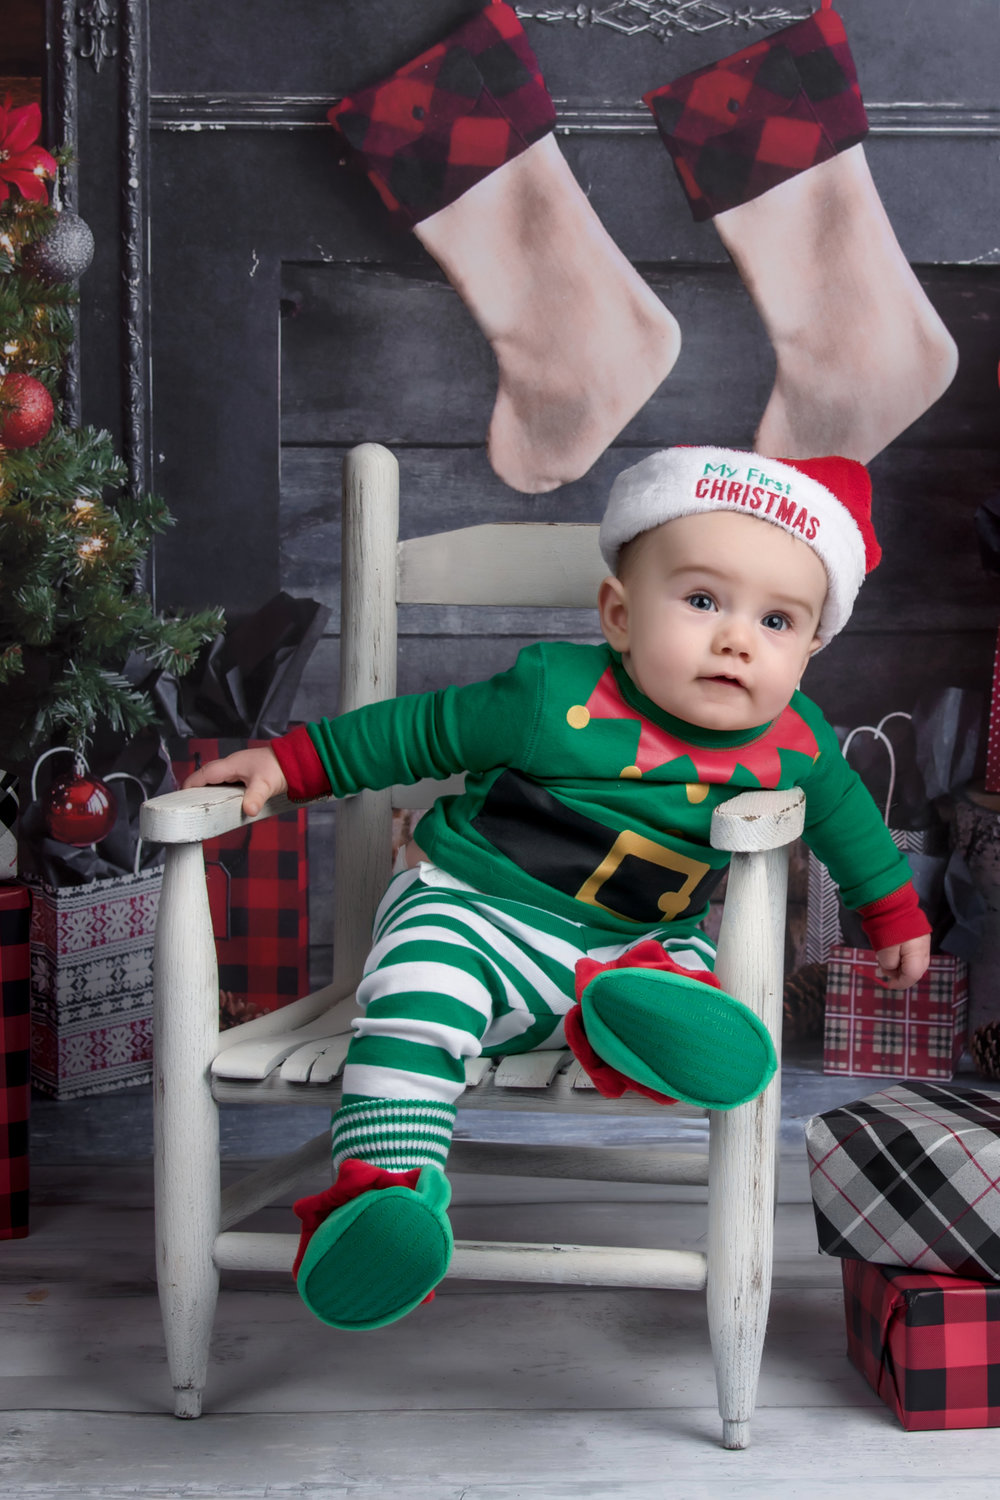 Little boy elf Christmas holiday mini session with stockings and mantel